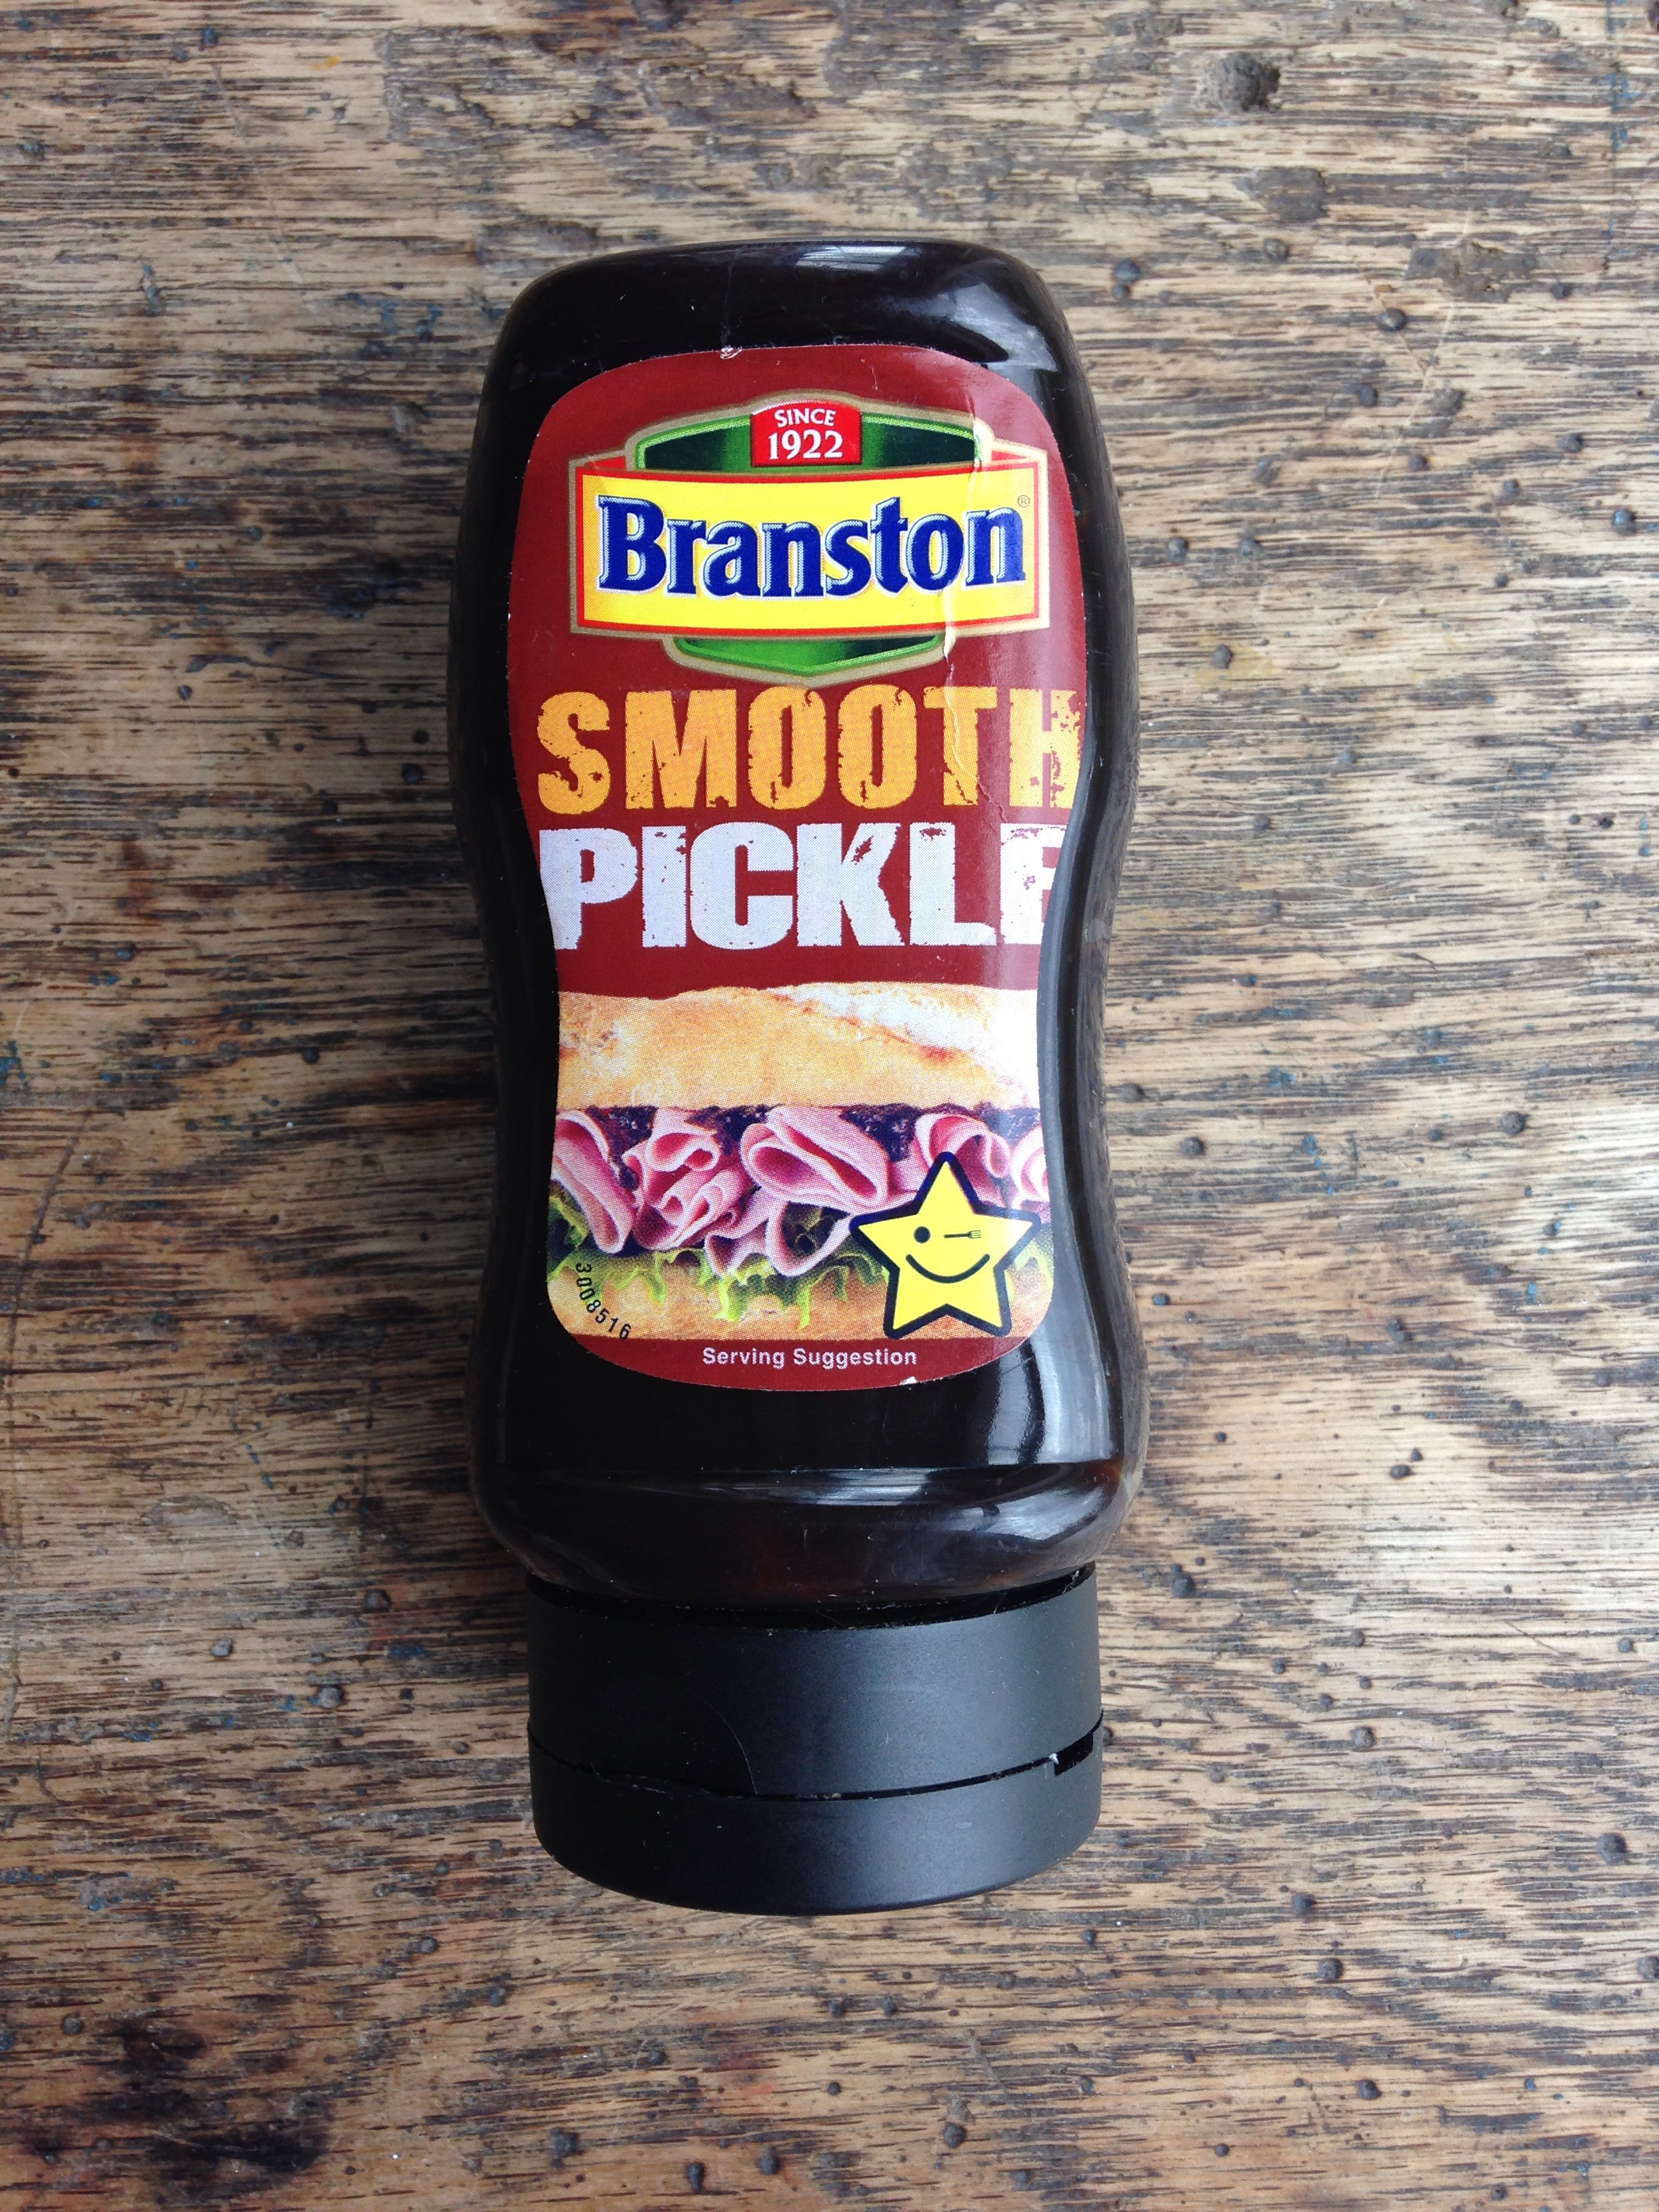 Branston Pickle Smooth